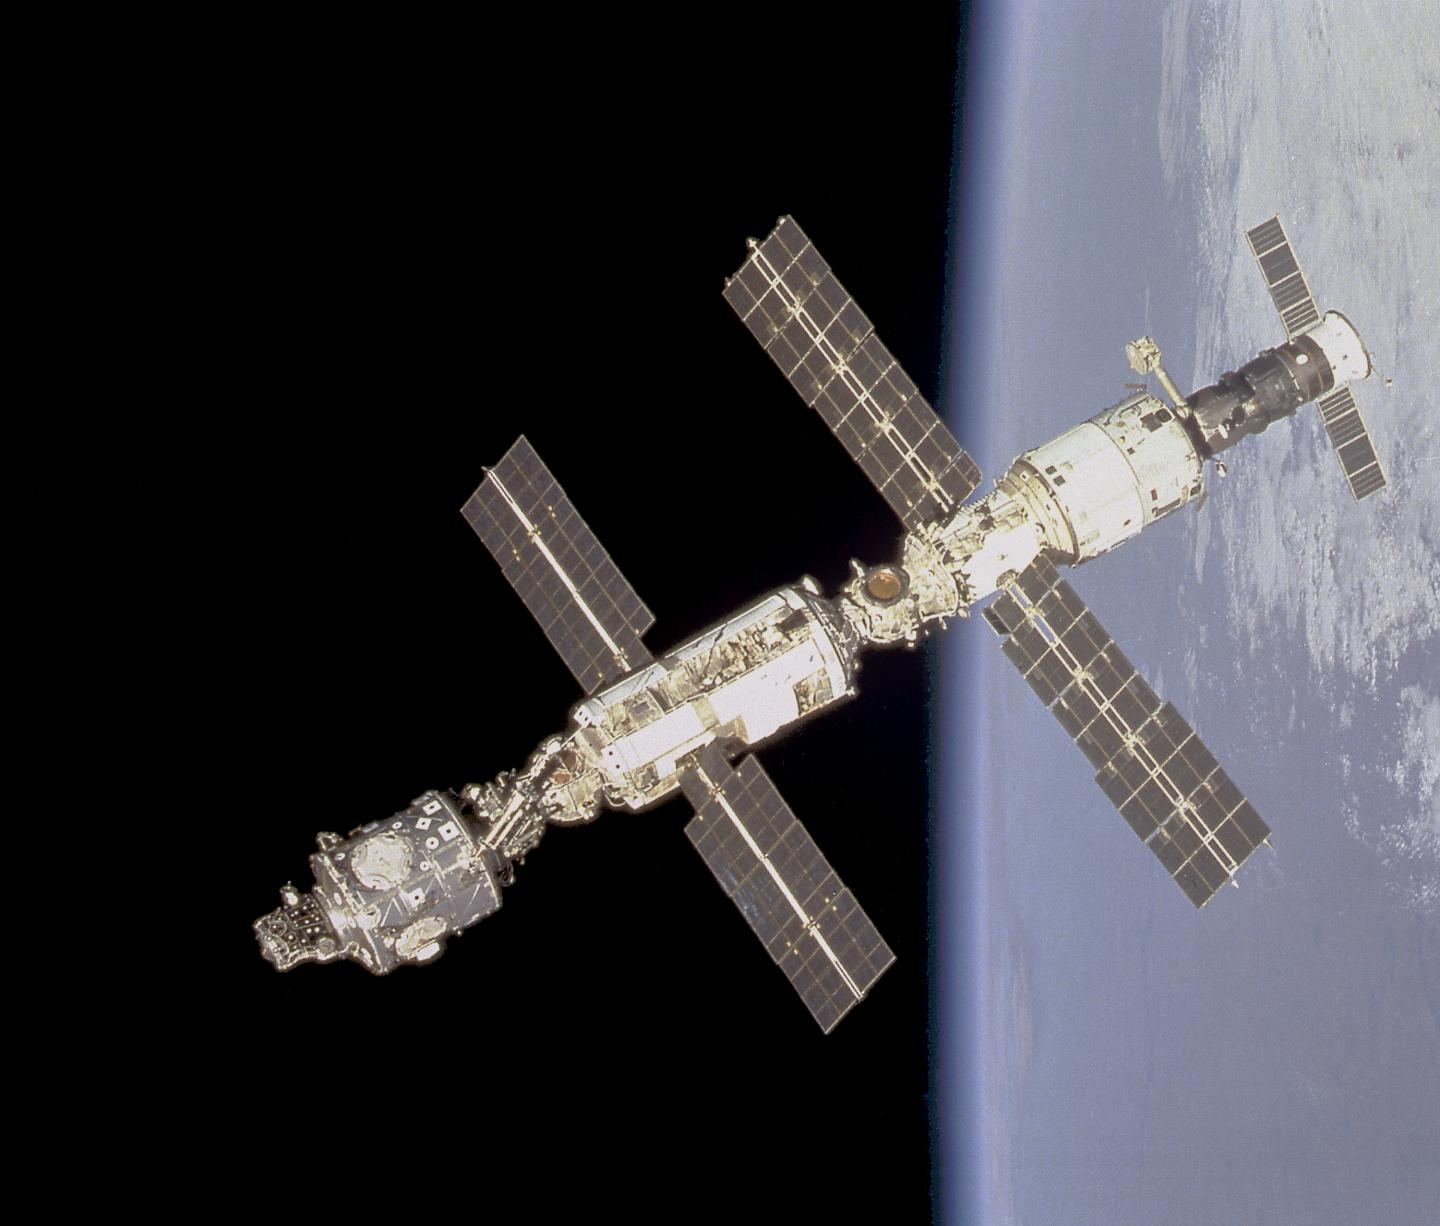 Treatment of Spaceflight Medical Risk 200+ Miles Above Earth